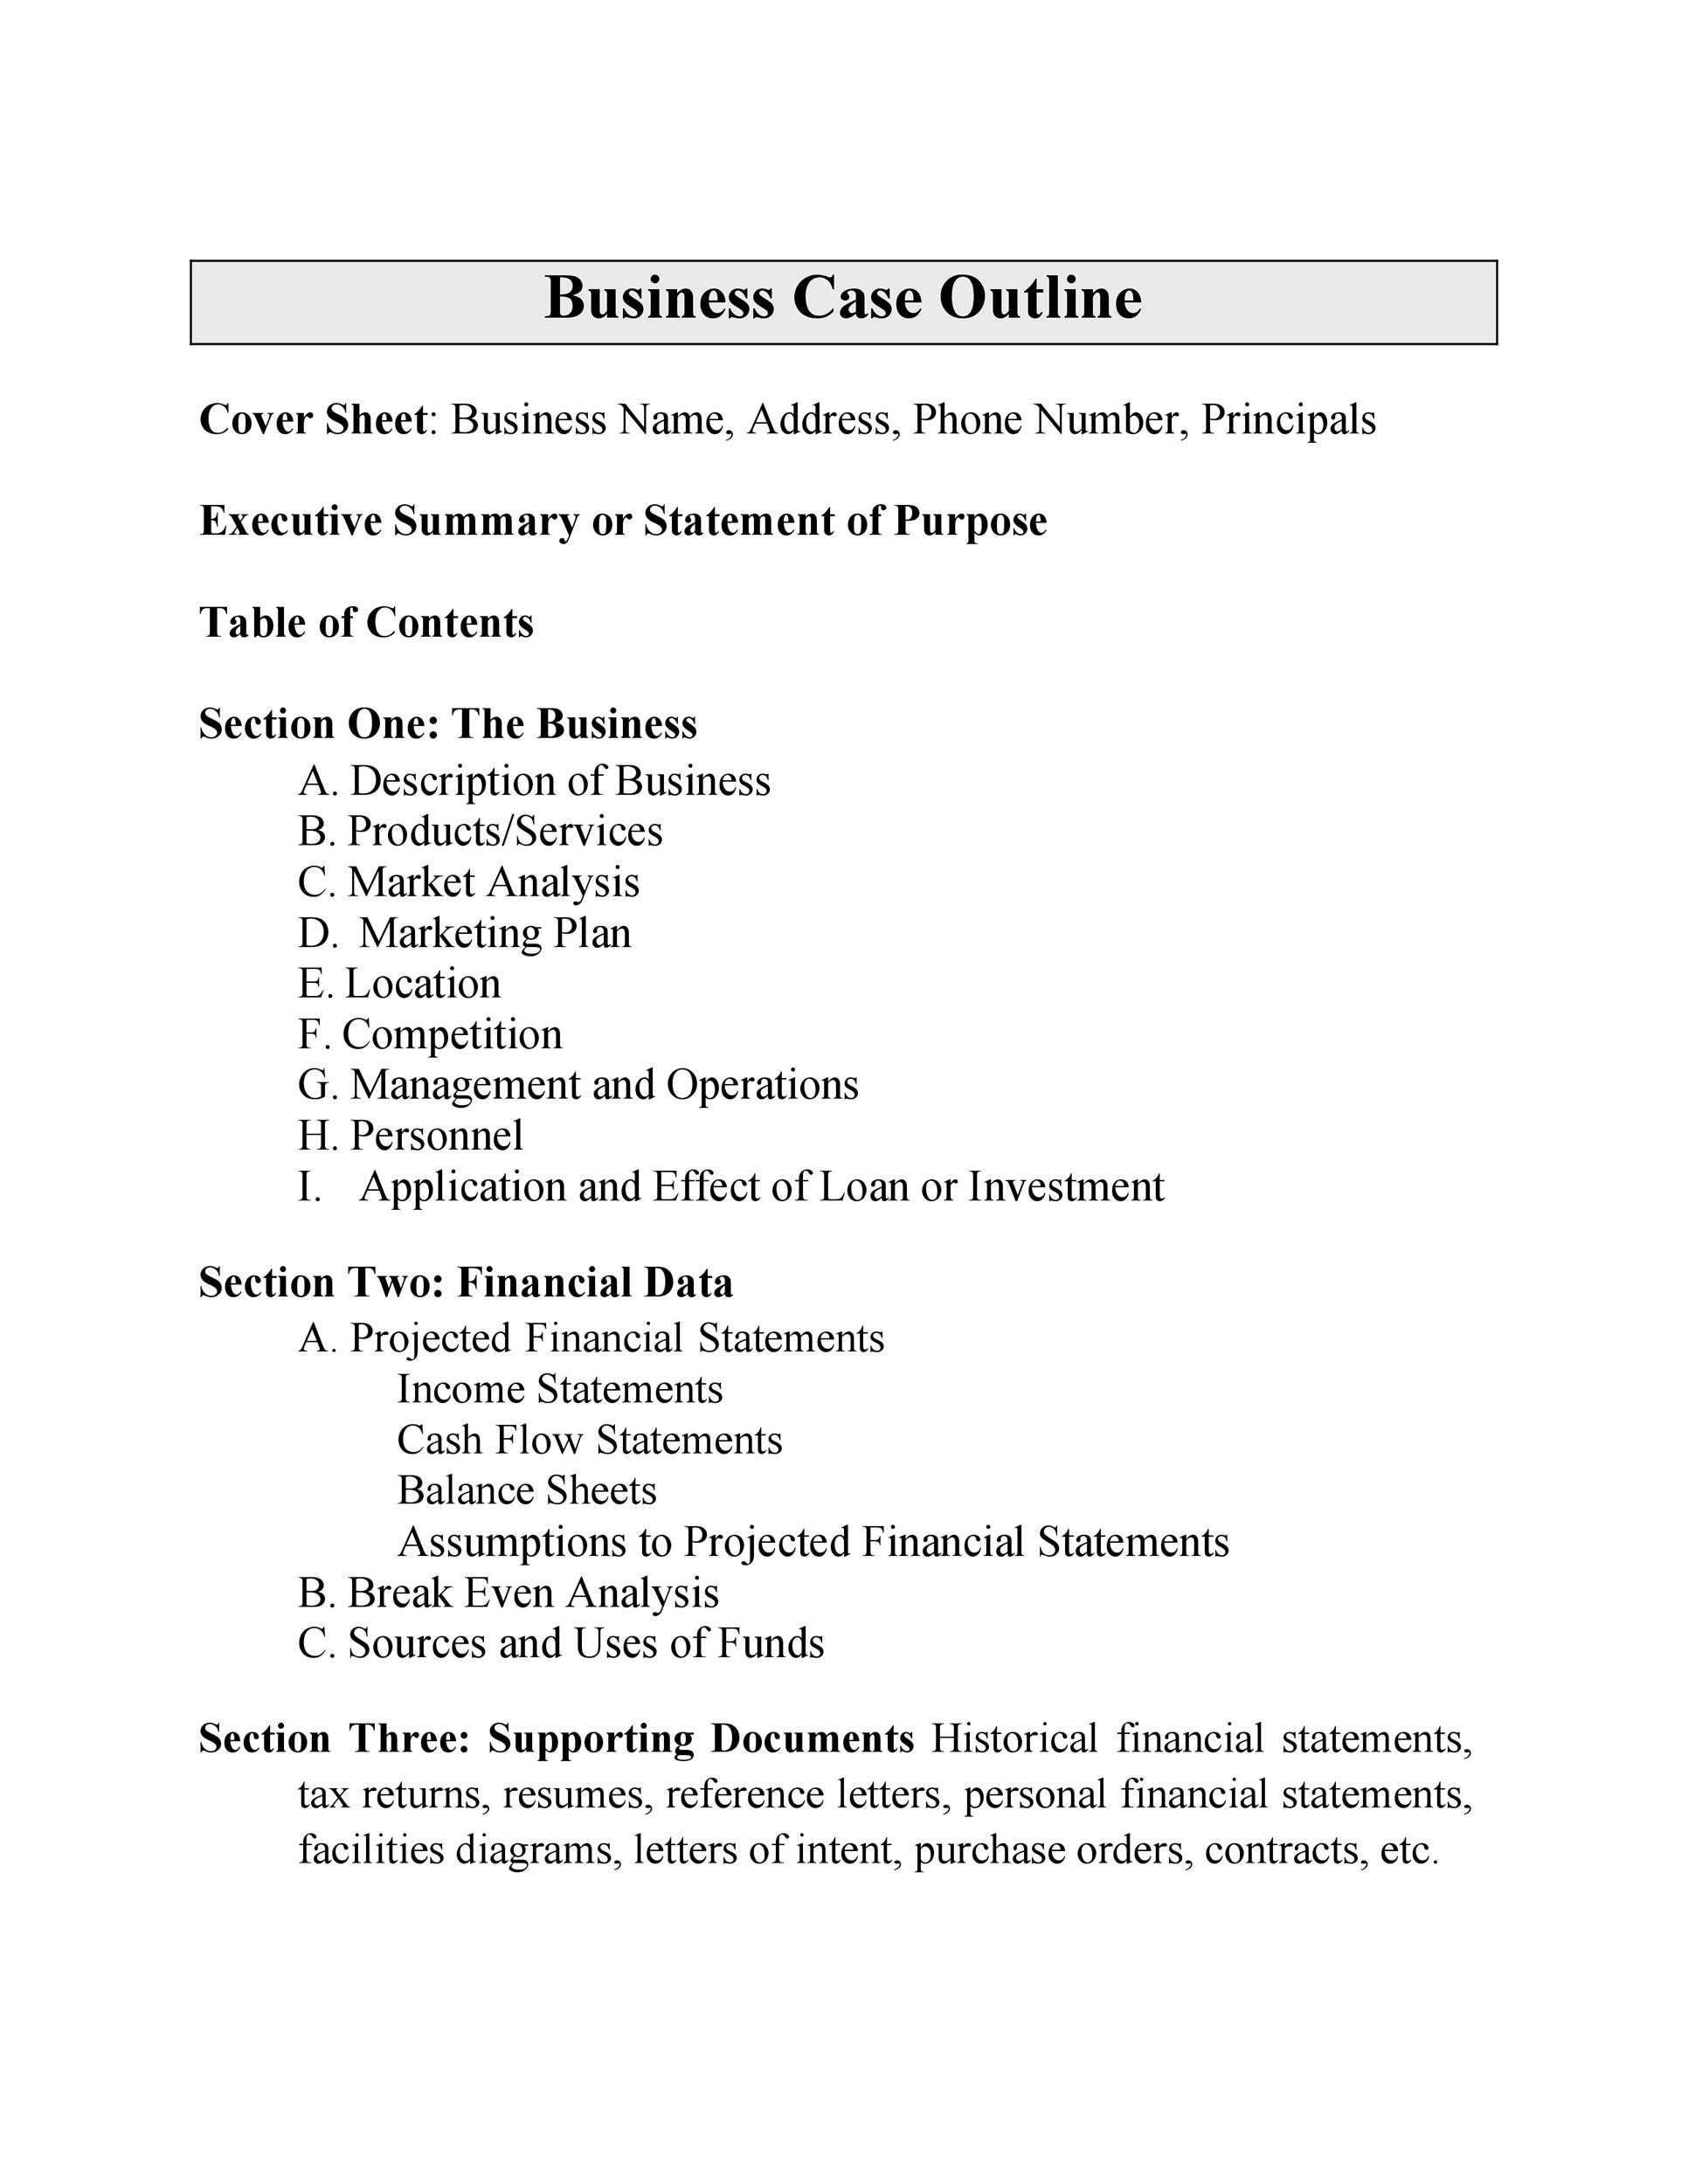 Free Business Case Template 15